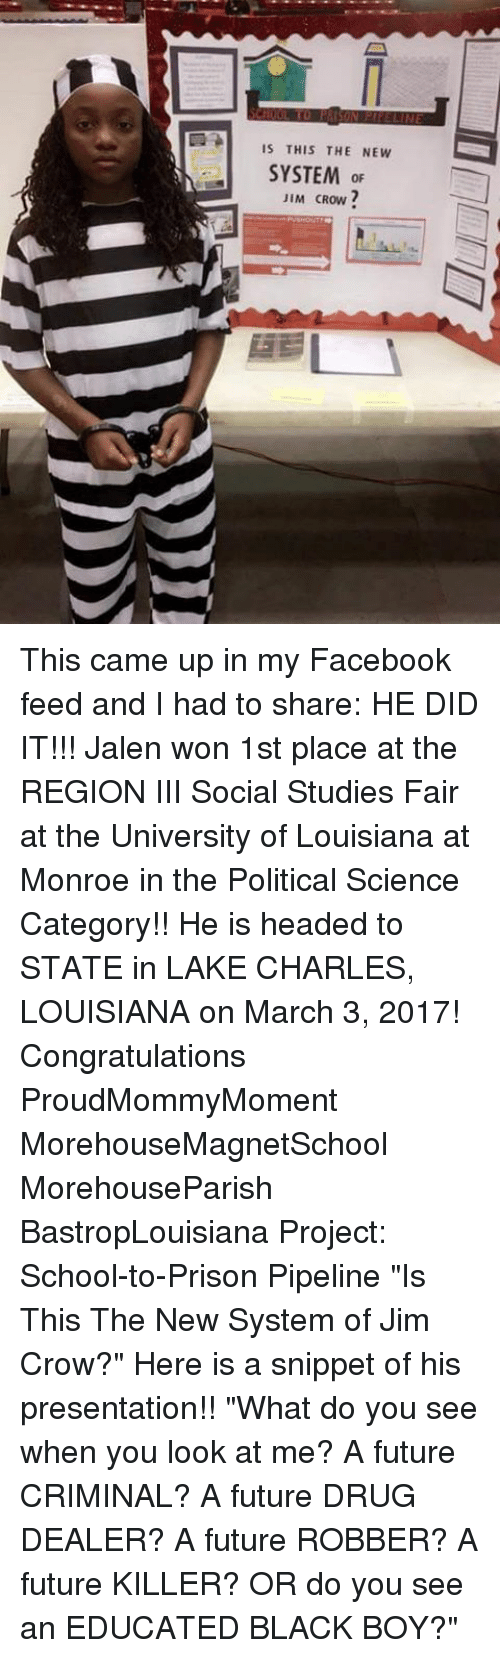 "Drug Dealer, Memes, and Louisiana: IS THIS THE NEW  SYSTEM  or  JIM CROW This came up in my Facebook feed and I had to share: HE DID IT!!! Jalen won 1st place at the REGION III Social Studies Fair at the University of Louisiana at Monroe in the Political Science Category!! He is headed to STATE in LAKE CHARLES, LOUISIANA on March 3, 2017! Congratulations ProudMommyMoment MorehouseMagnetSchool MorehouseParish BastropLouisiana Project: School-to-Prison Pipeline ""Is This The New System of Jim Crow?"" Here is a snippet of his presentation!! ""What do you see when you look at me? A future CRIMINAL? A future DRUG DEALER? A future ROBBER? A future KILLER? OR do you see an EDUCATED BLACK BOY?"""